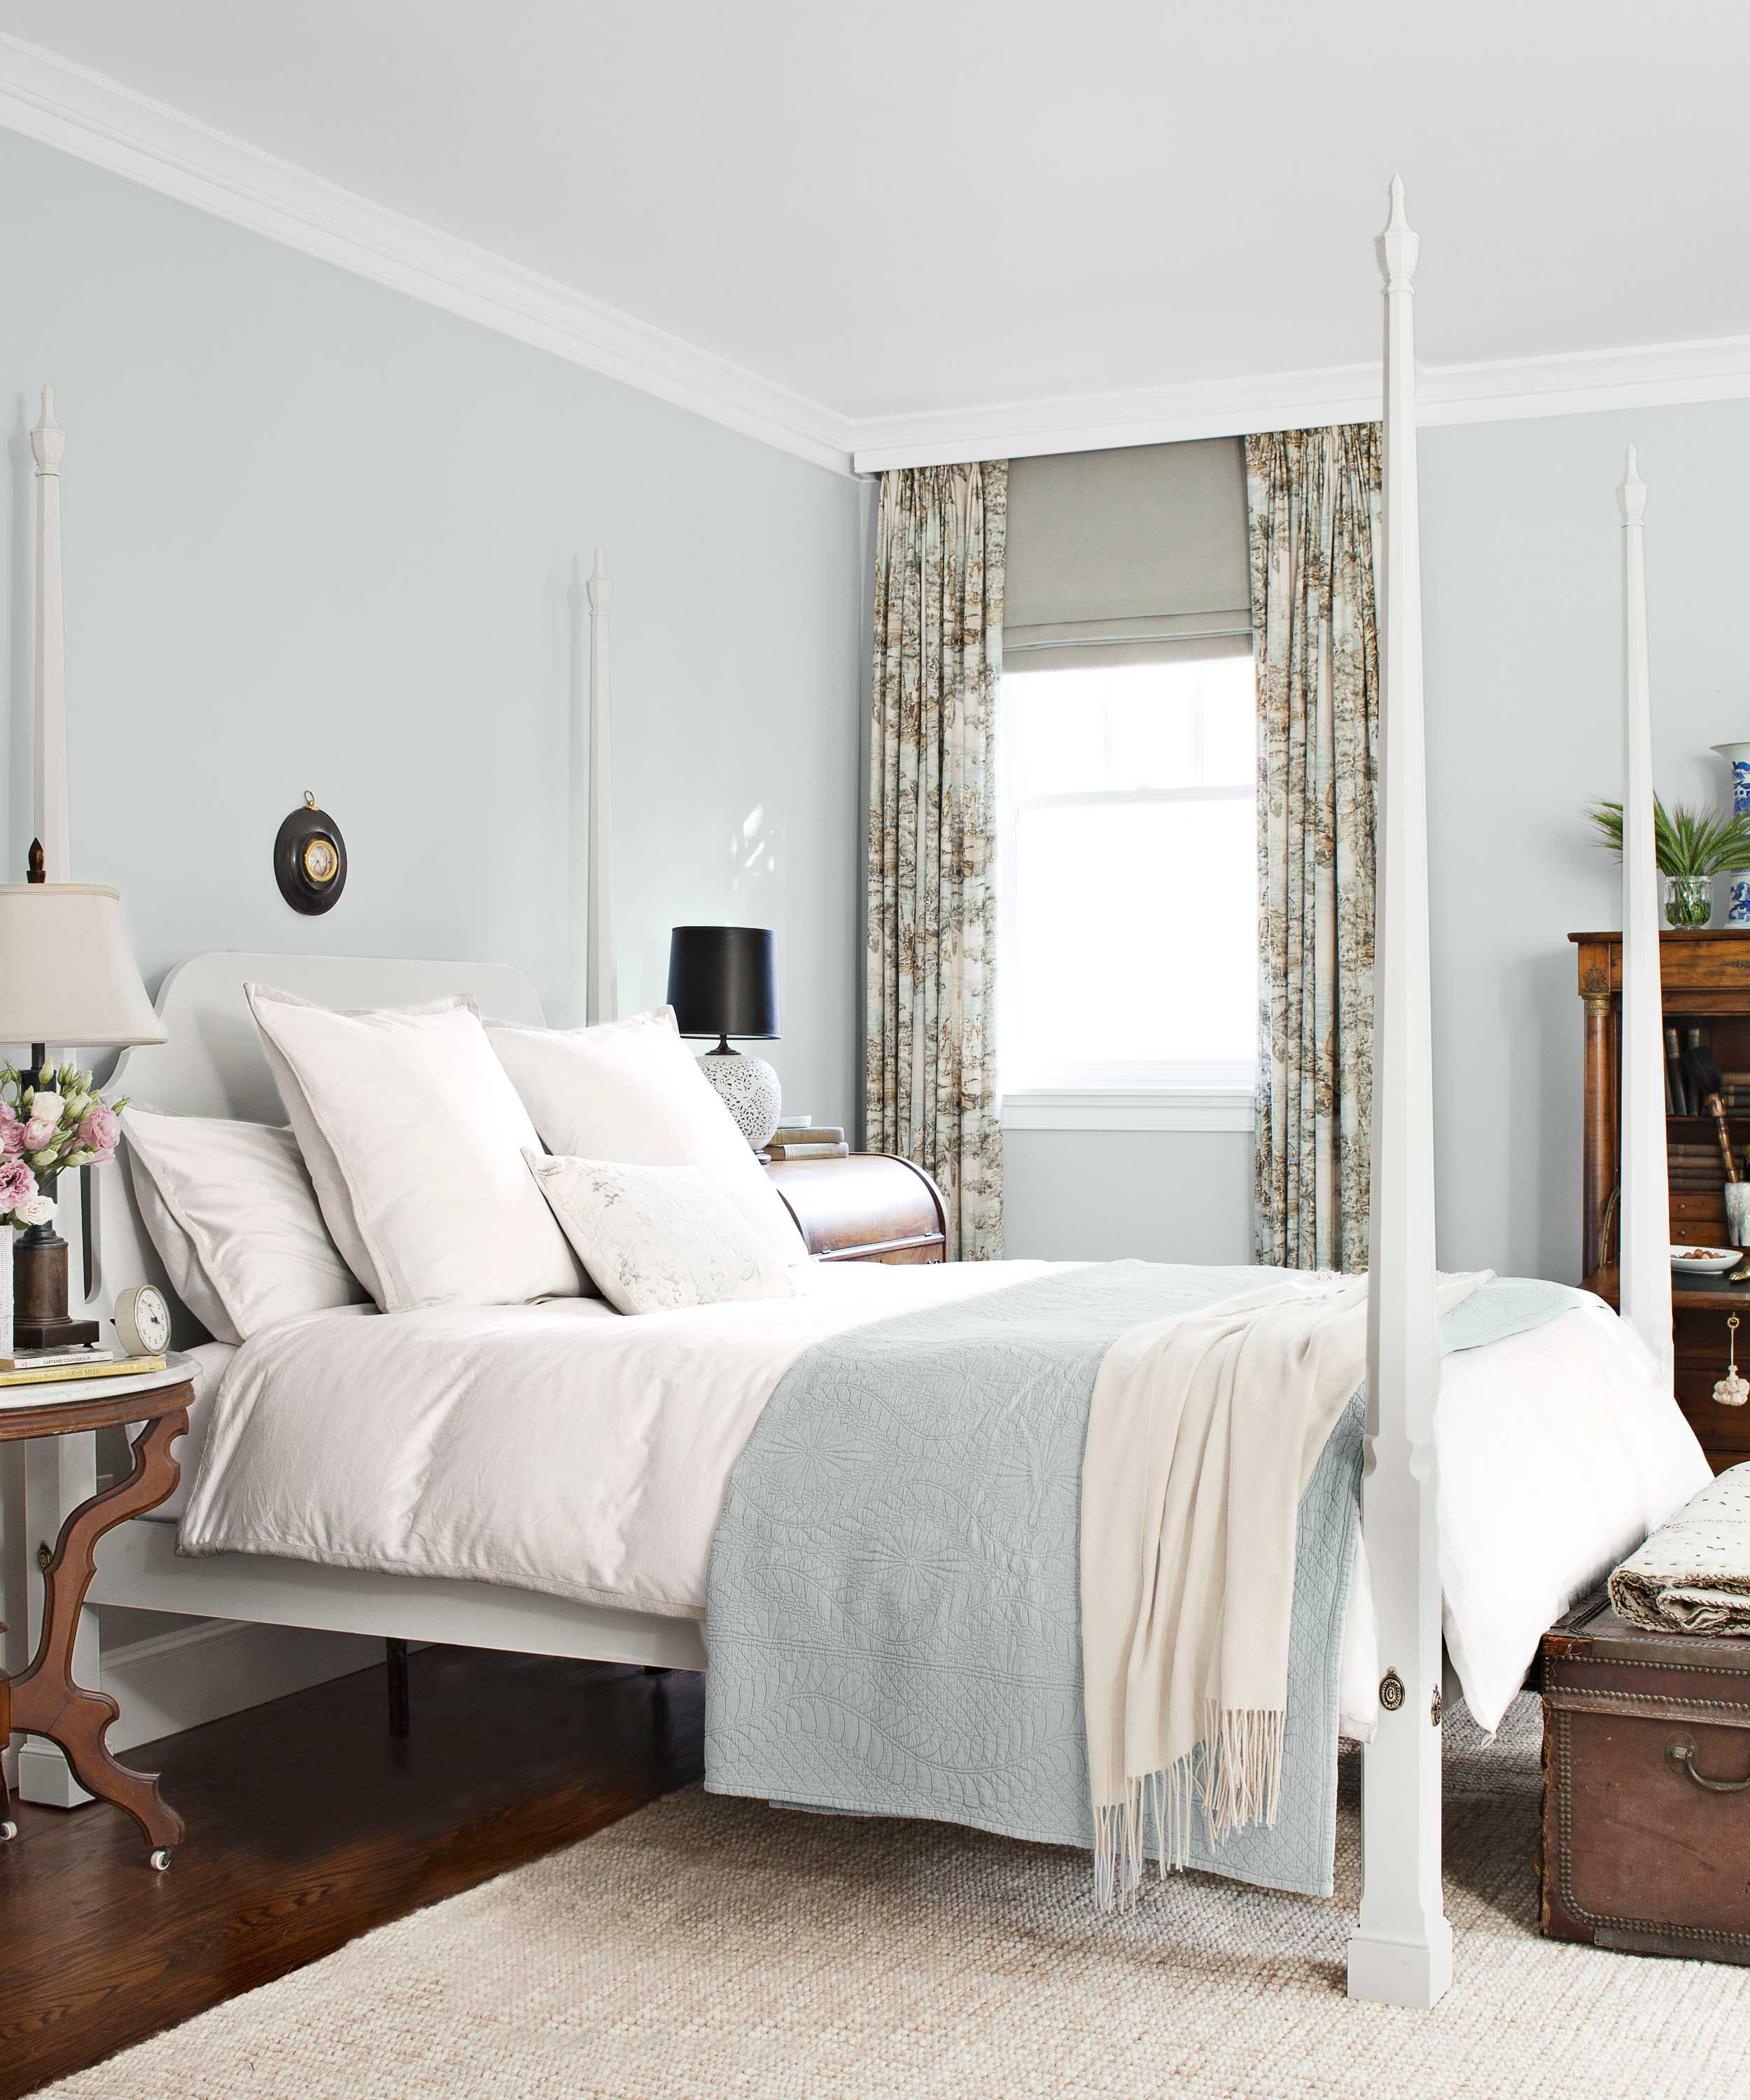 23 Warm Paint Colors For A Cozier Home